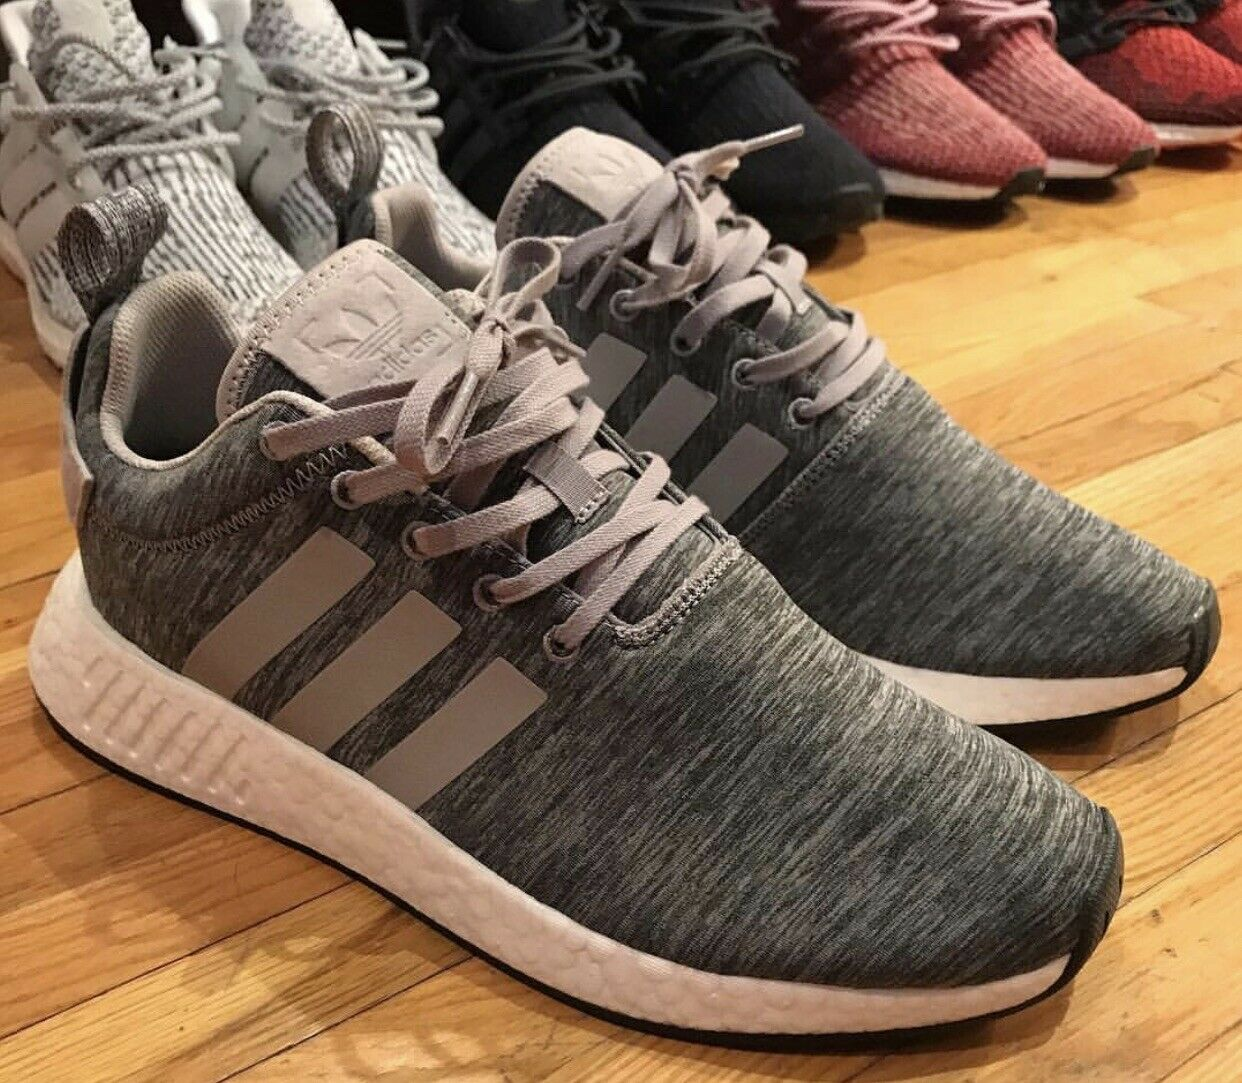 cheaper b1683 7bf48 Adidas NMD R2 SNS Grey Melange Size 10.5 Yeezy Yzy PK Sneakers N Stuff